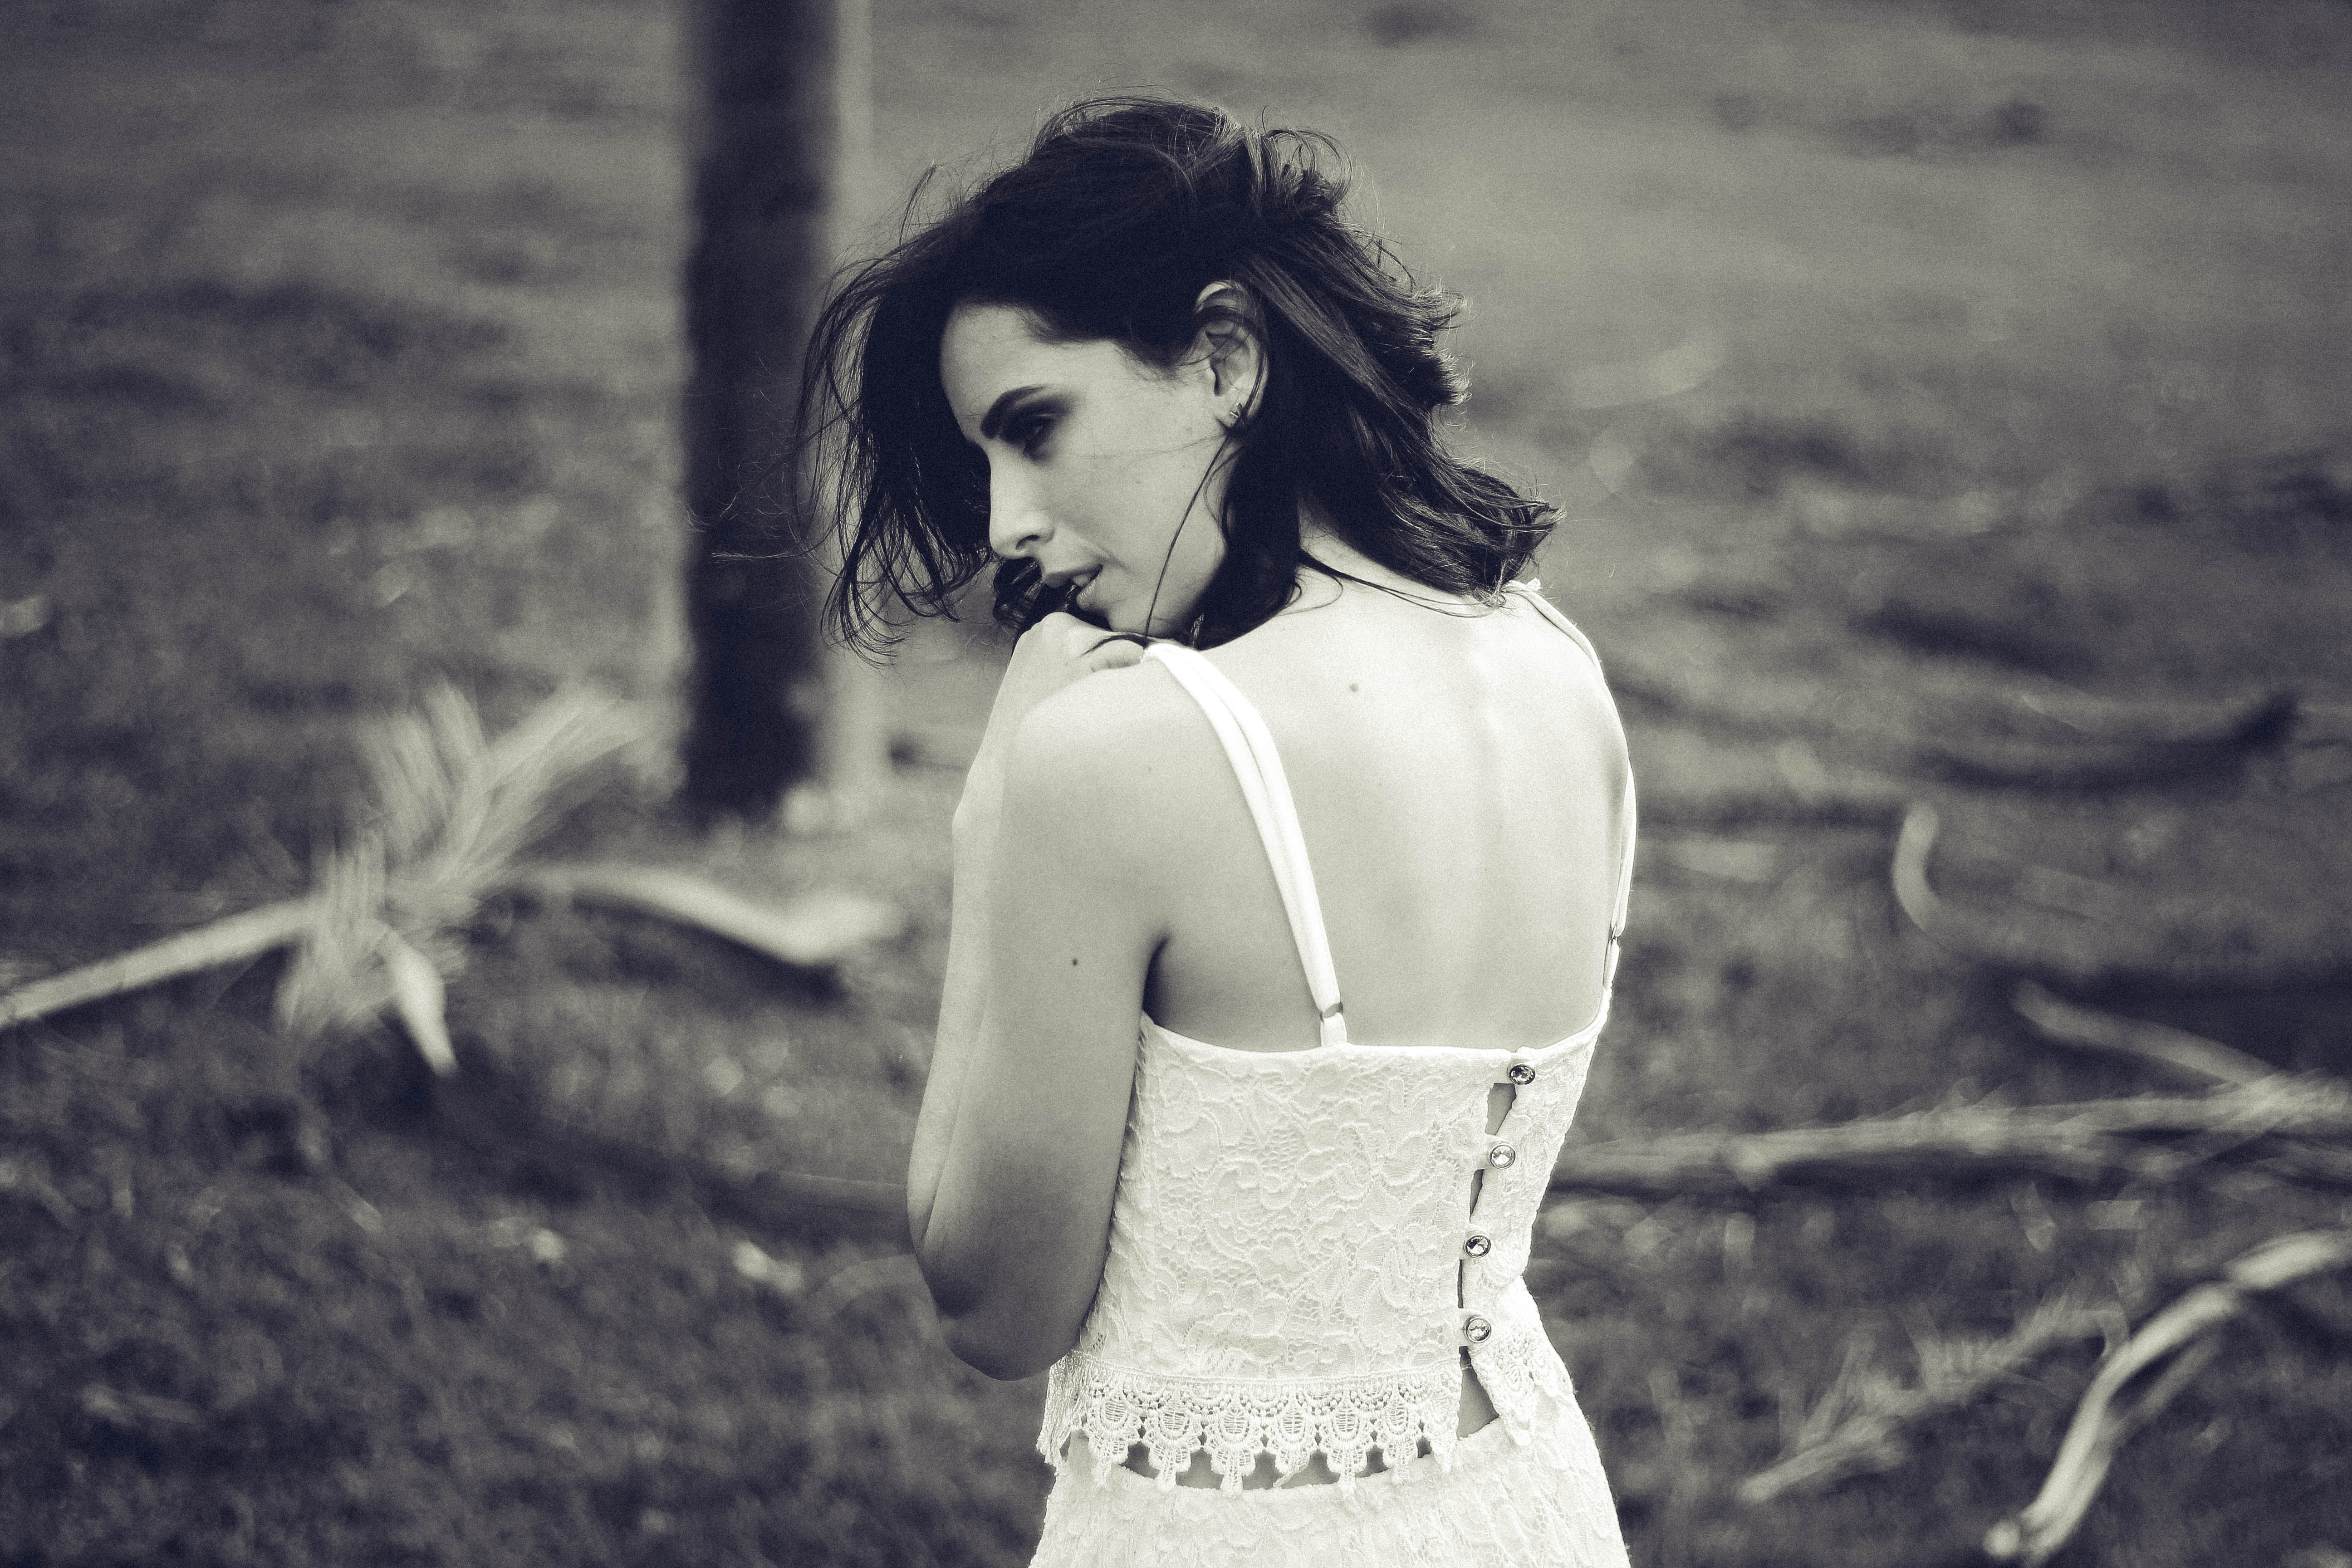 Black and white shot from behind of brunette woman in lace dress standing